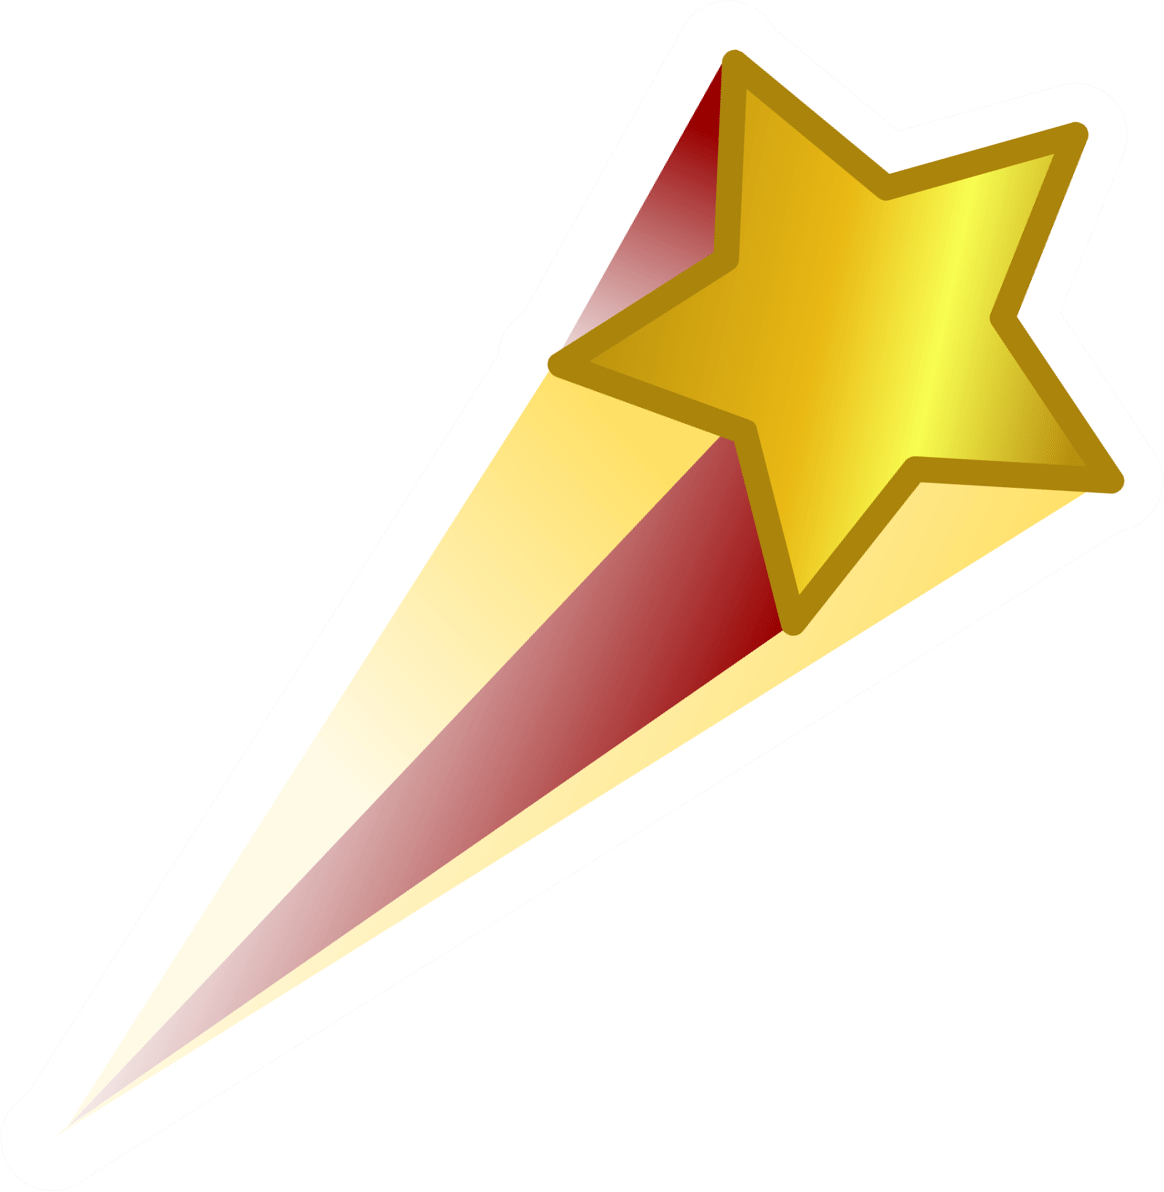 Shooting Star clipart golden star StickPNG transparent Gold Star Red